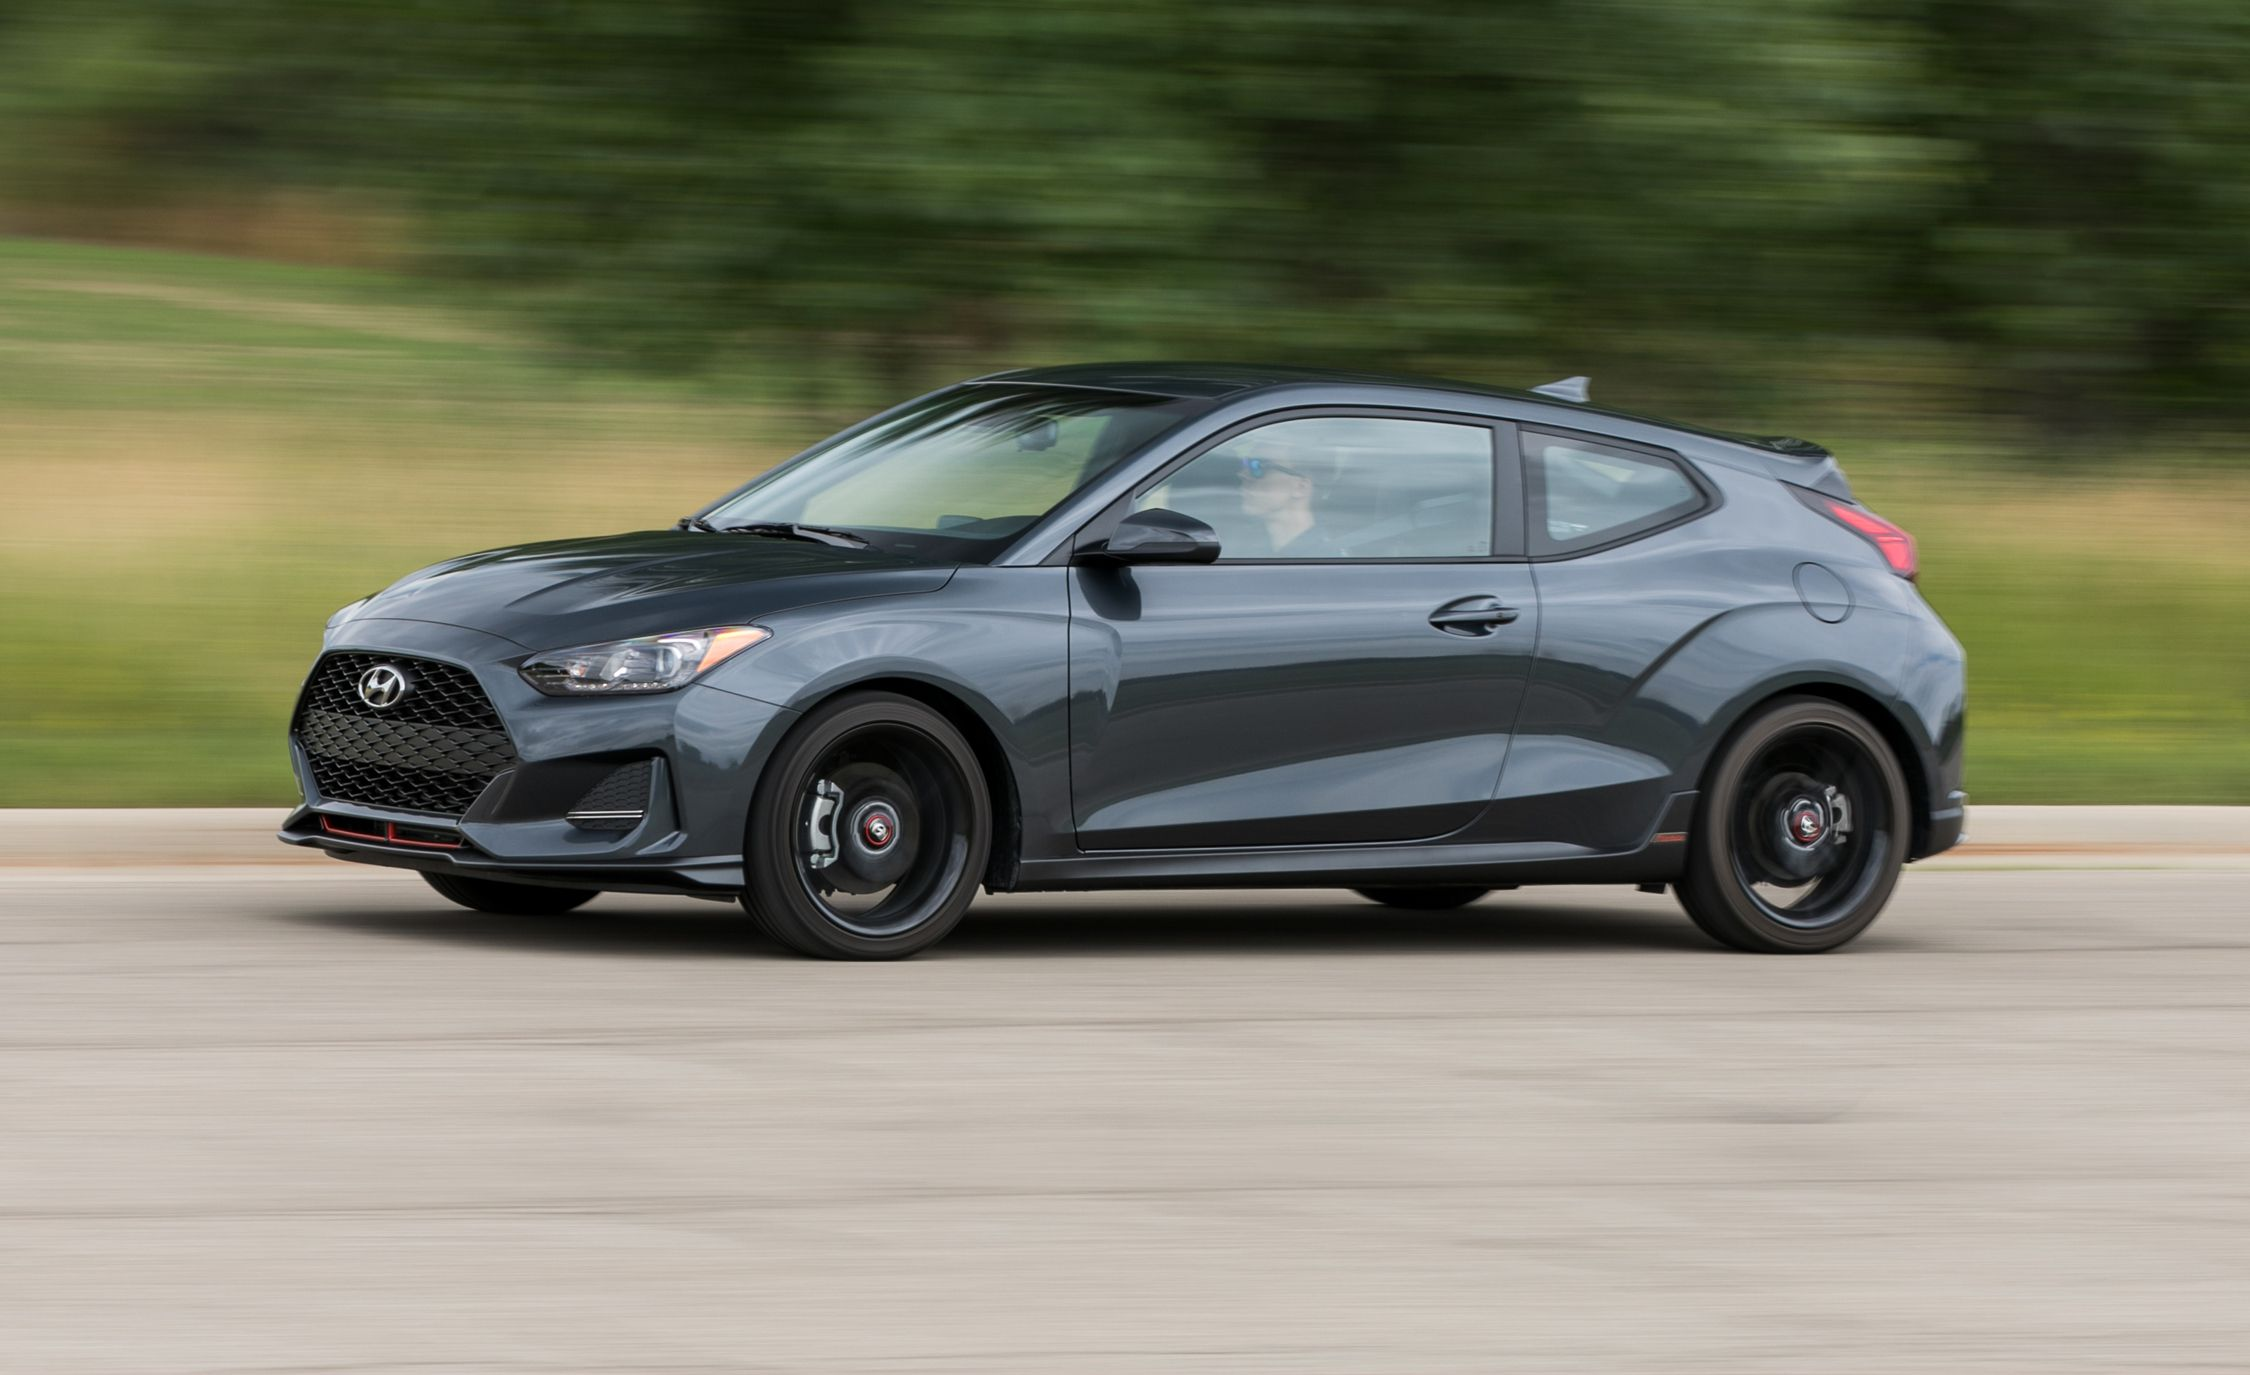 2018 Hyundai Veloster Spec >> Hyundai Veloster Reviews | Hyundai Veloster Price, Photos, and Specs | Car and Driver